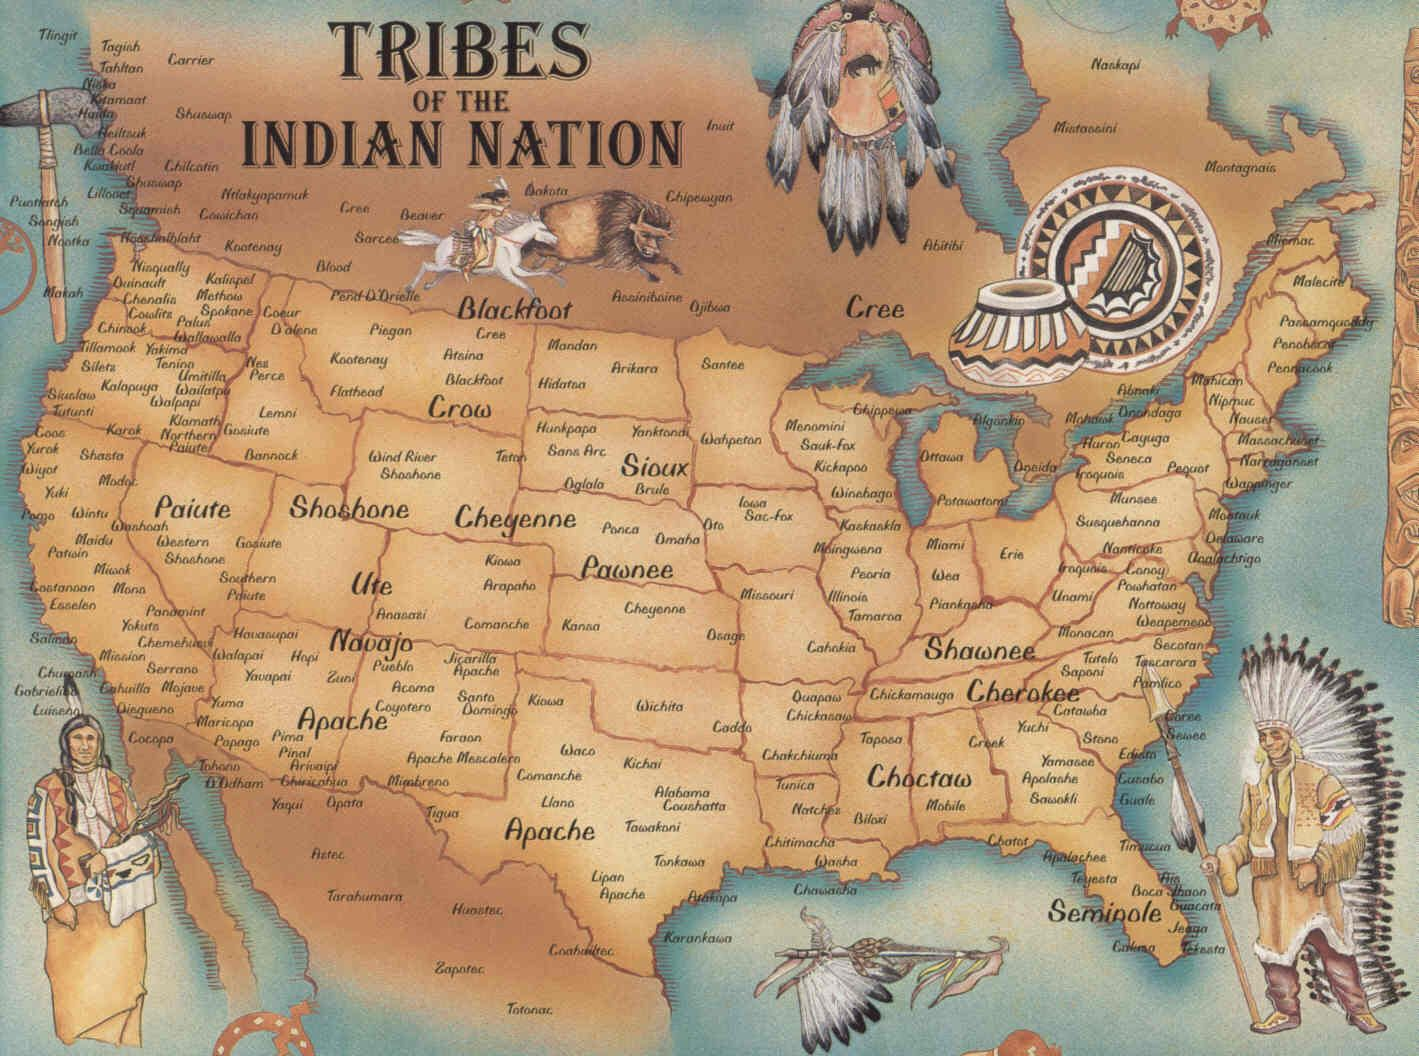 List and maps of Native American tribes | Native american ... Indian Tribe Map on indian tribes of michigan, indian area map, indian tribes of the great plains, first nations map, indian cheyenne map, us tribes map, indian tribes list all, indian tribes by state, indian region map, indian tribes in the united states, indian powhatan map, indian tribes in colorado, indian tribes along the oregon trail, plains indians map, indian reservation map, indian map of the united states, indian tribes of mexico, indian travel map, indian trust land of sale, american indian map,